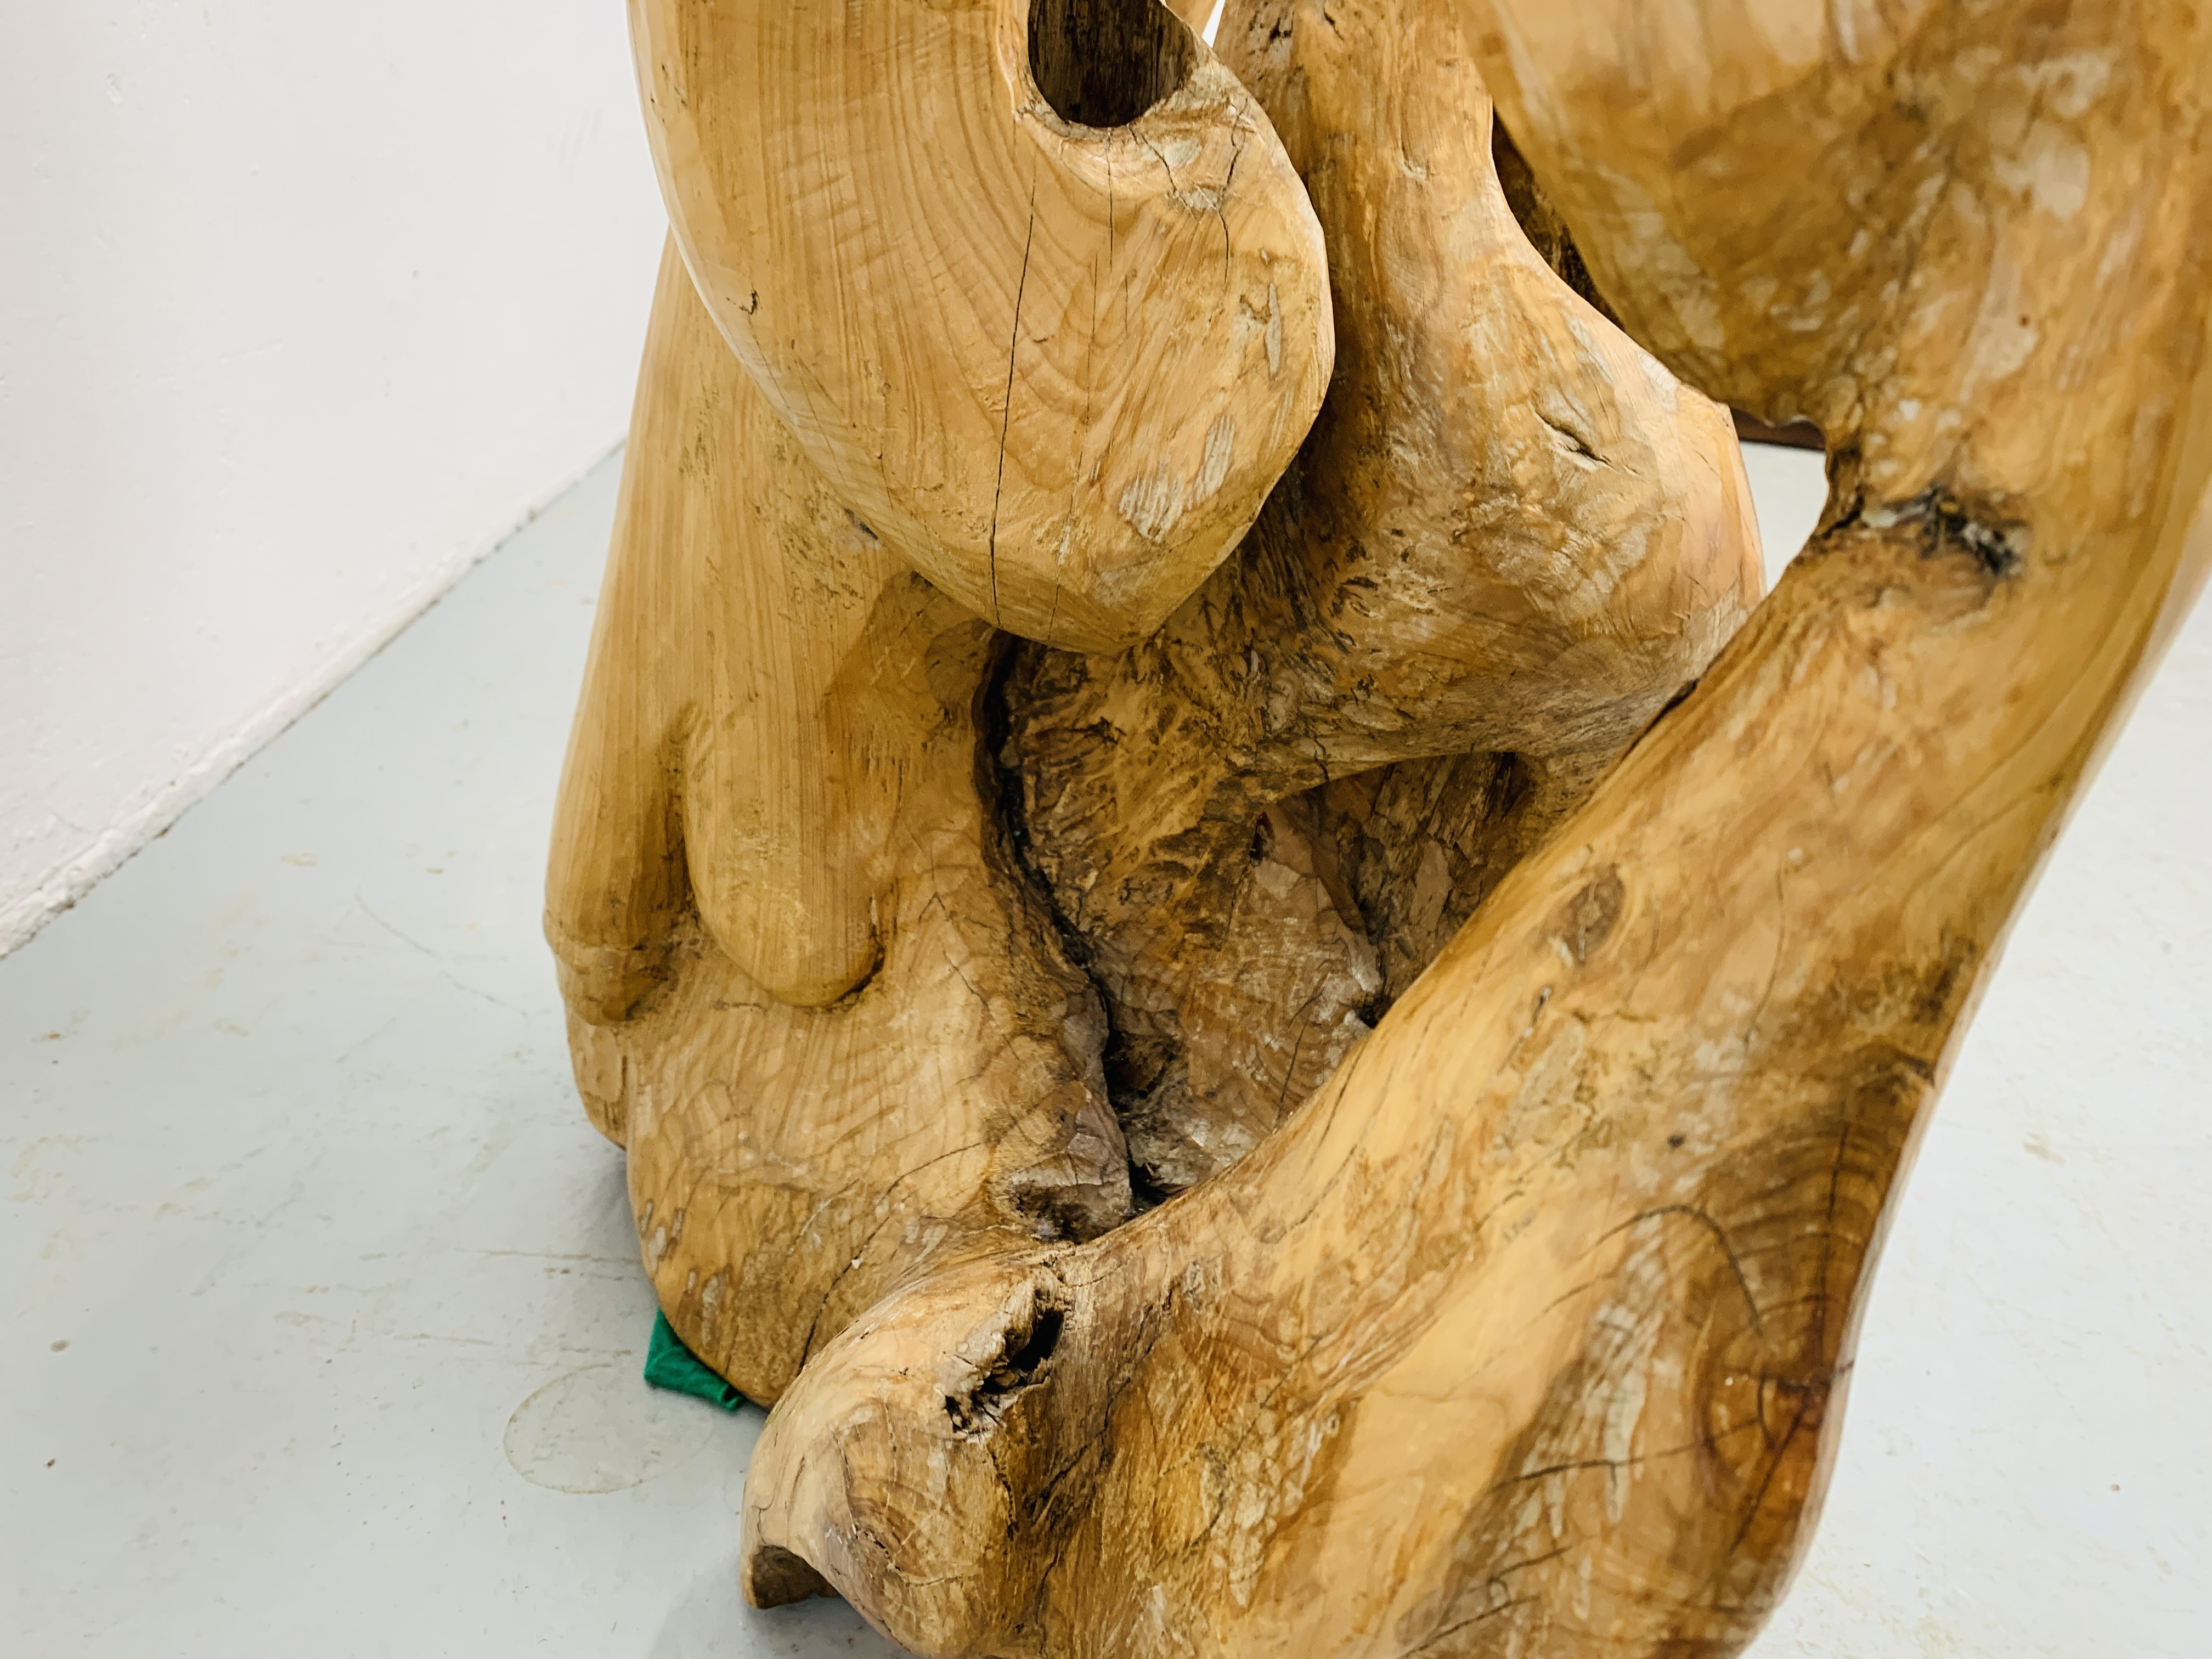 """A HARDWOOD ABSTRACT SCULPTURE """"FAMILY"""" BY P.T. - Image 8 of 9"""